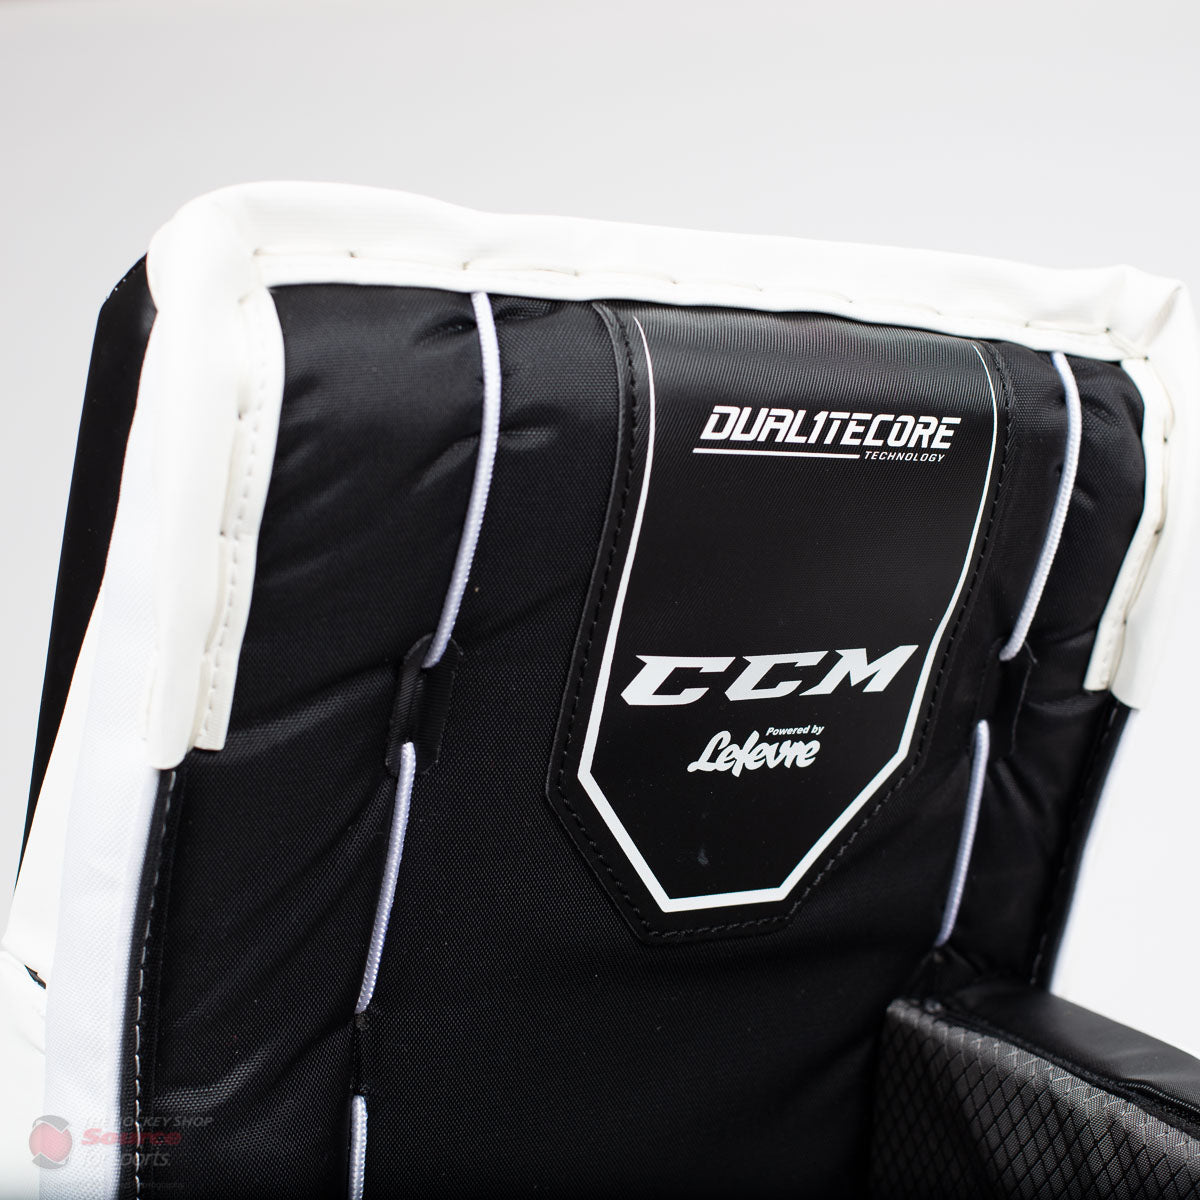 CCM Extreme Flex E4.5 Senior Goalie Leg Pads - Source Exclusive